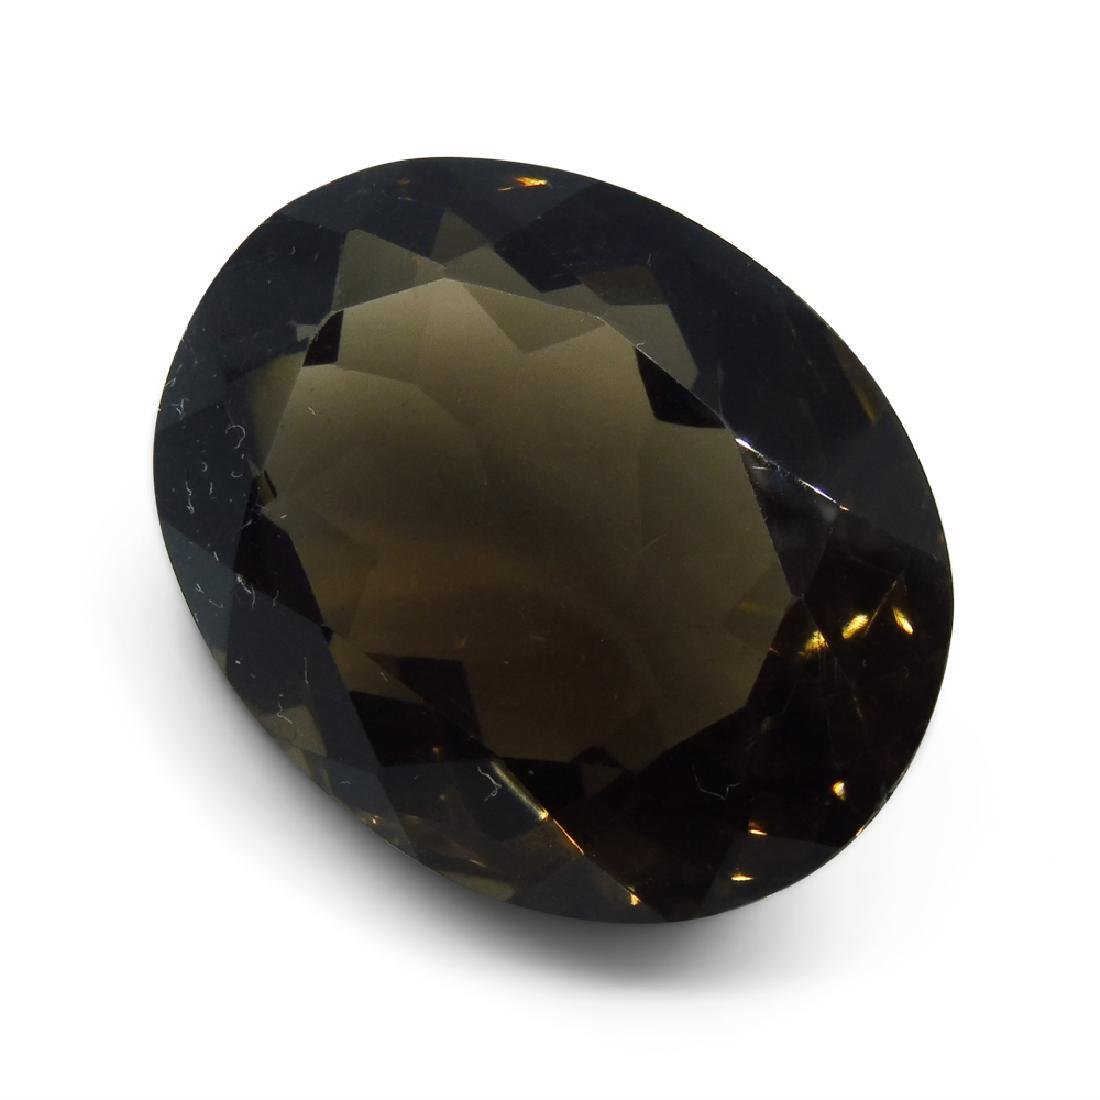 24.73 ct Oval Smokey Quartz - 7